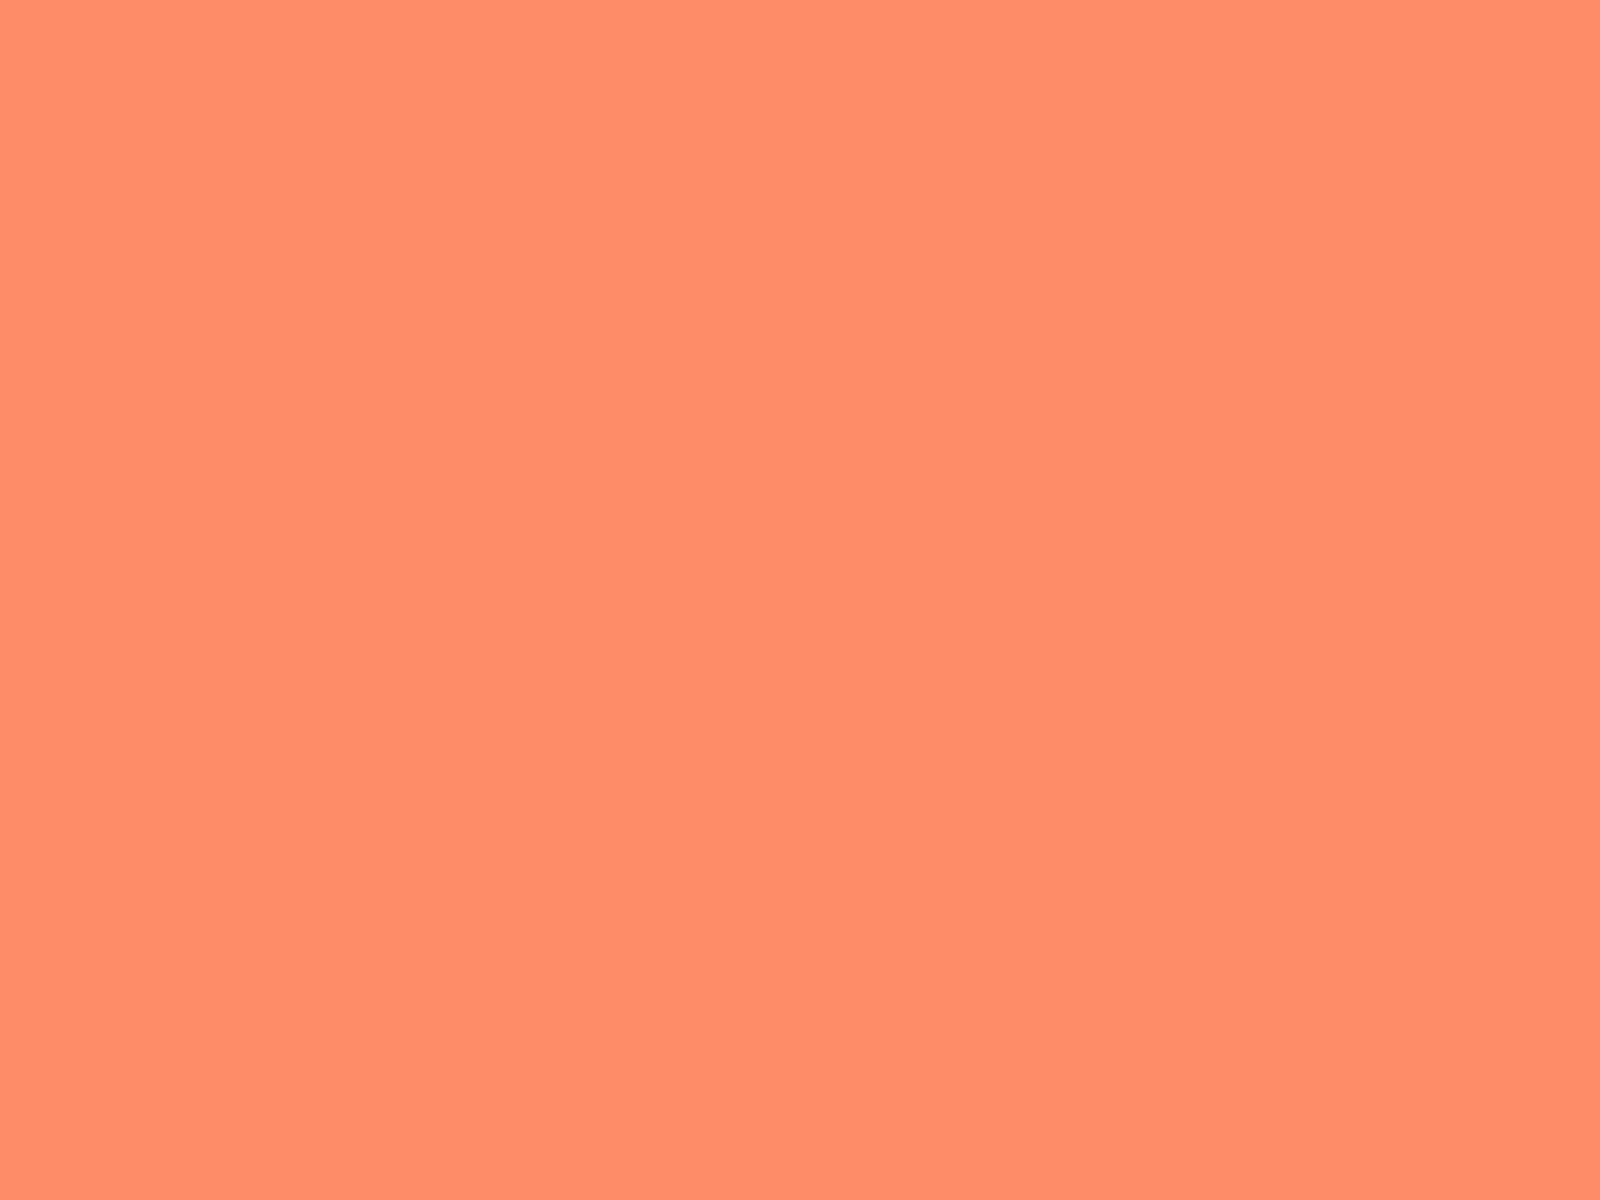 1600x1200 Salmon Solid Color Background